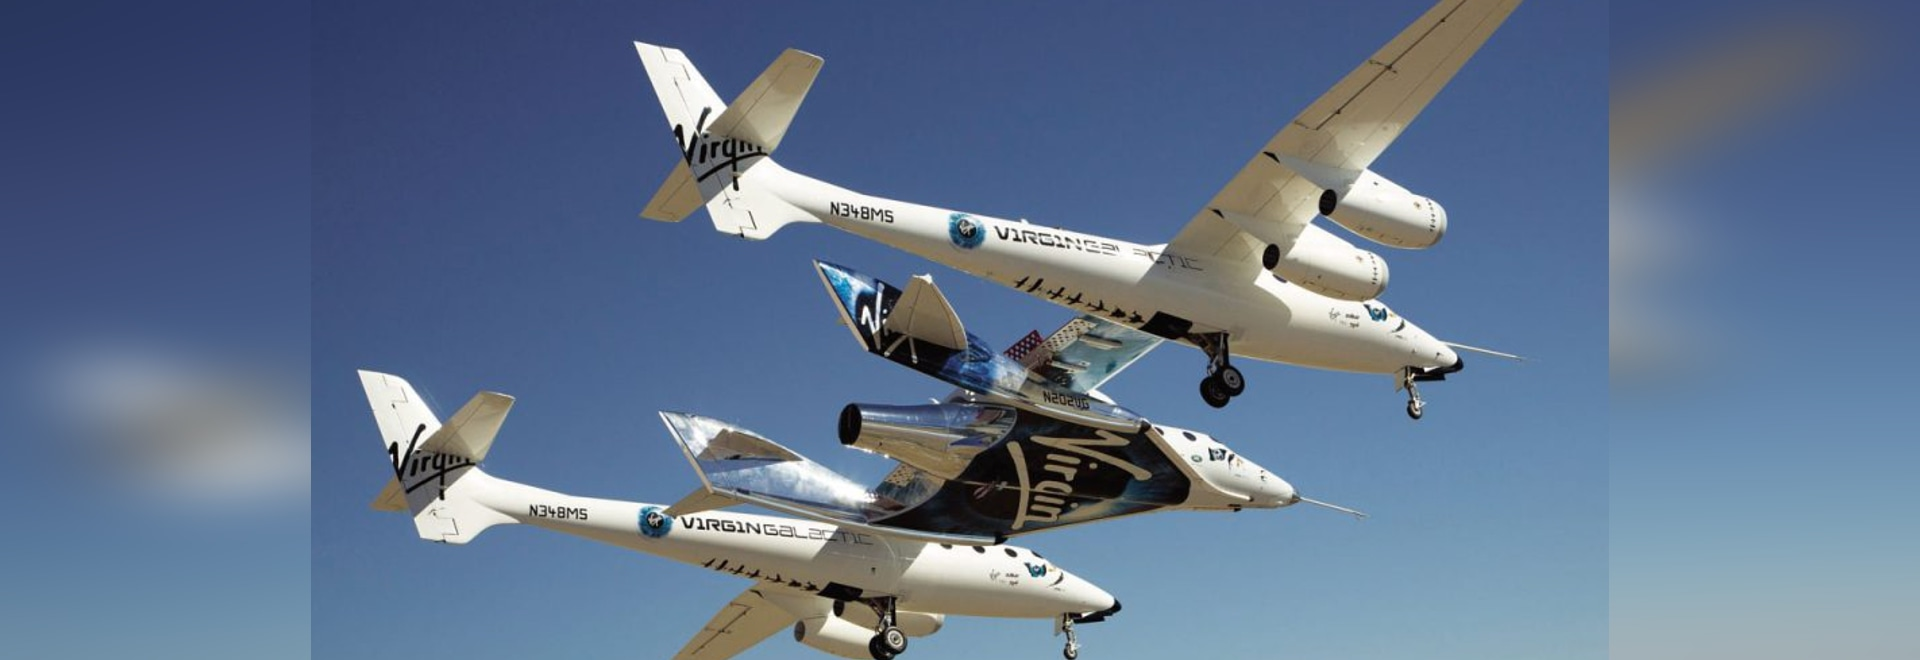 Virgin Galactic's SpaceShipTwo is one of 11 nominees vying for the 2019 Collier Trophy.